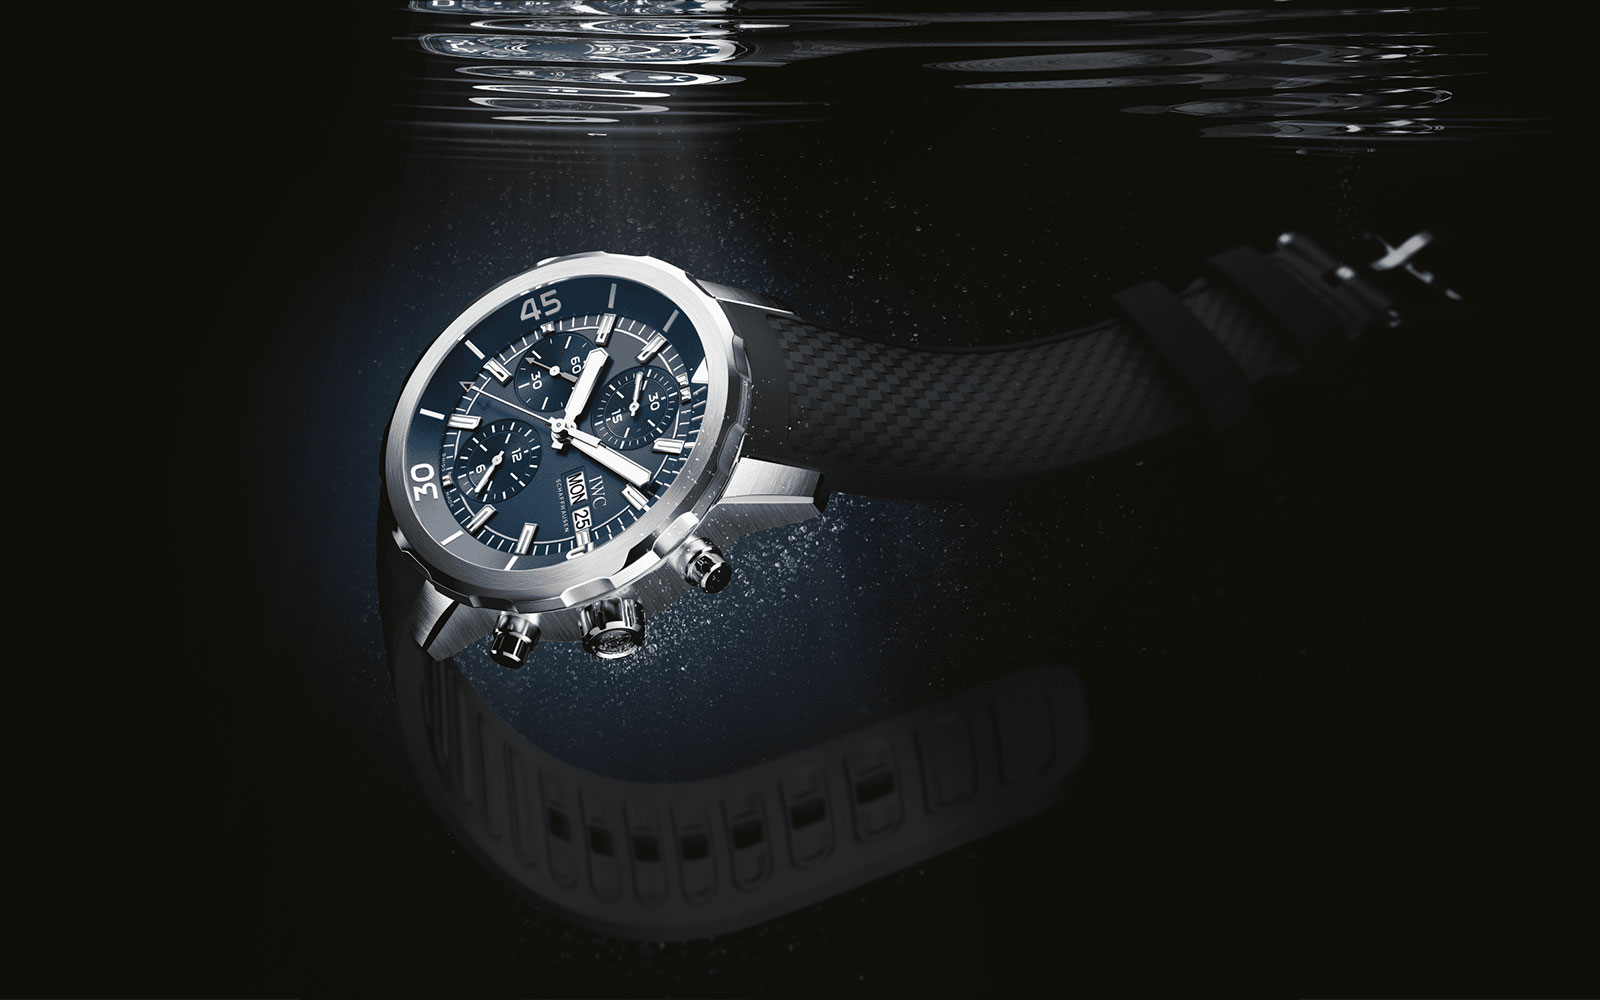 """AQUATIMER CHRONOGRAPH EDITION """"EXPEDITION JACQUES-YVES COUSTEAU"""" IW376805 - feature"""